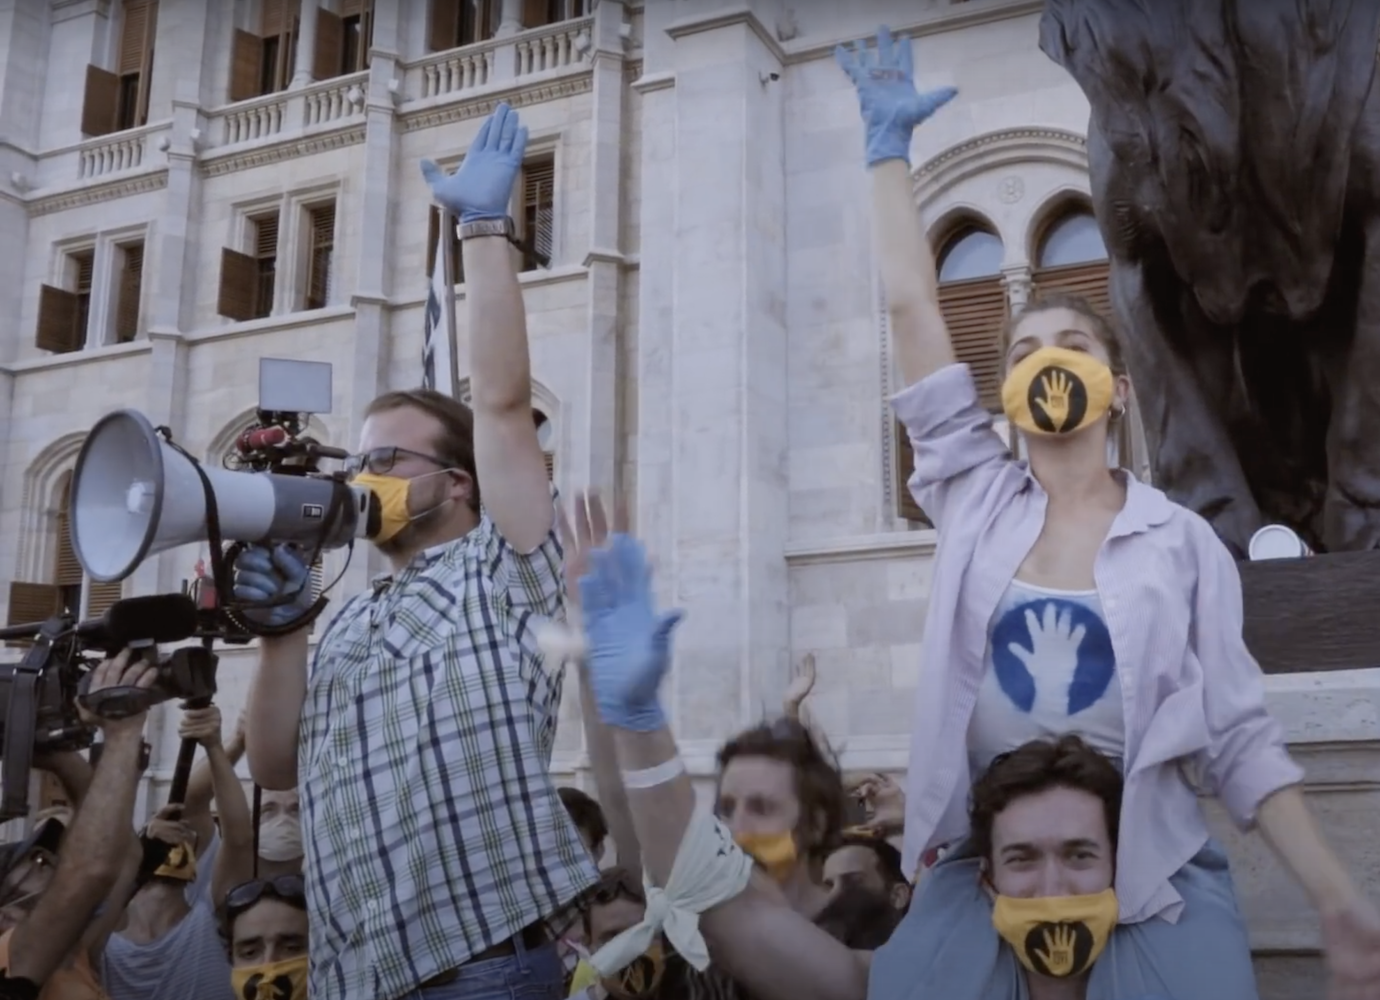 Watch the documentary capturing the dissidence of Hungary's 2020 student blockades